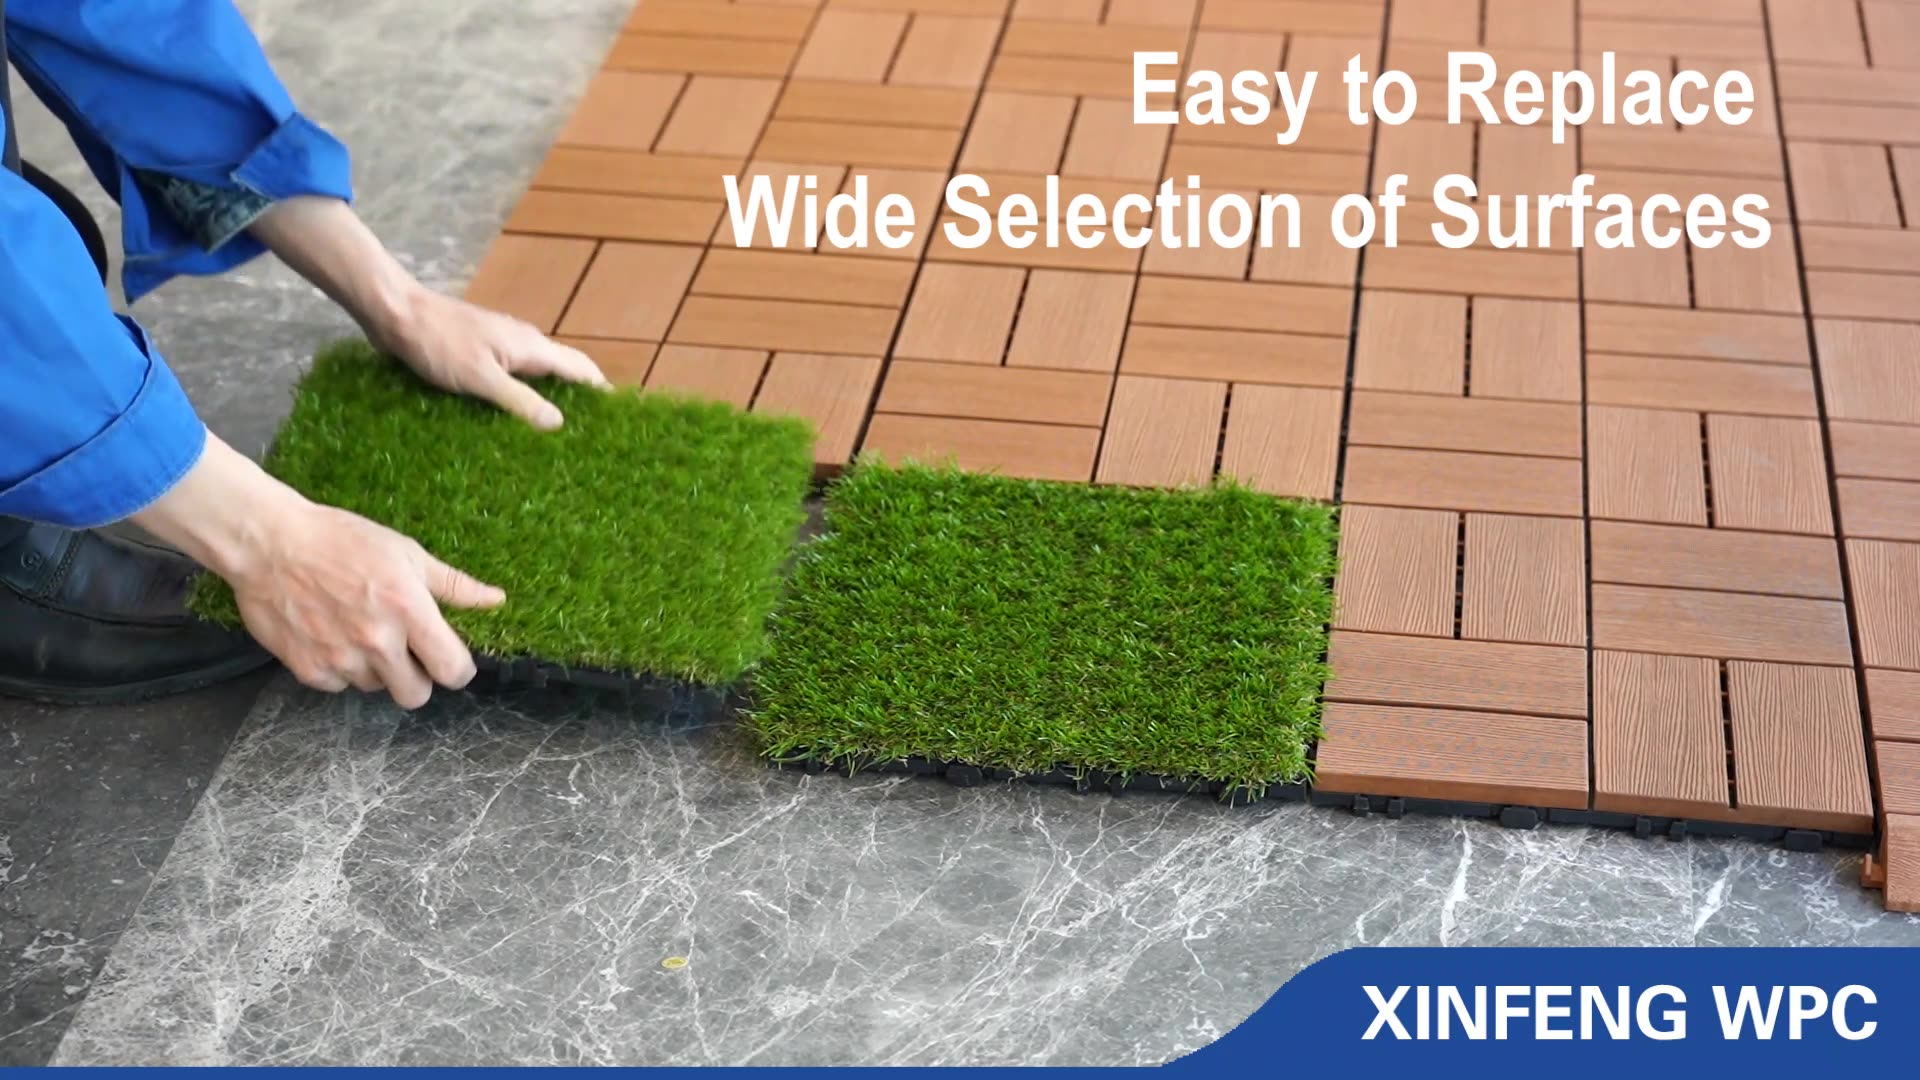 Durable Natural Slate Paving Stone DIY Tiles for Landscaping